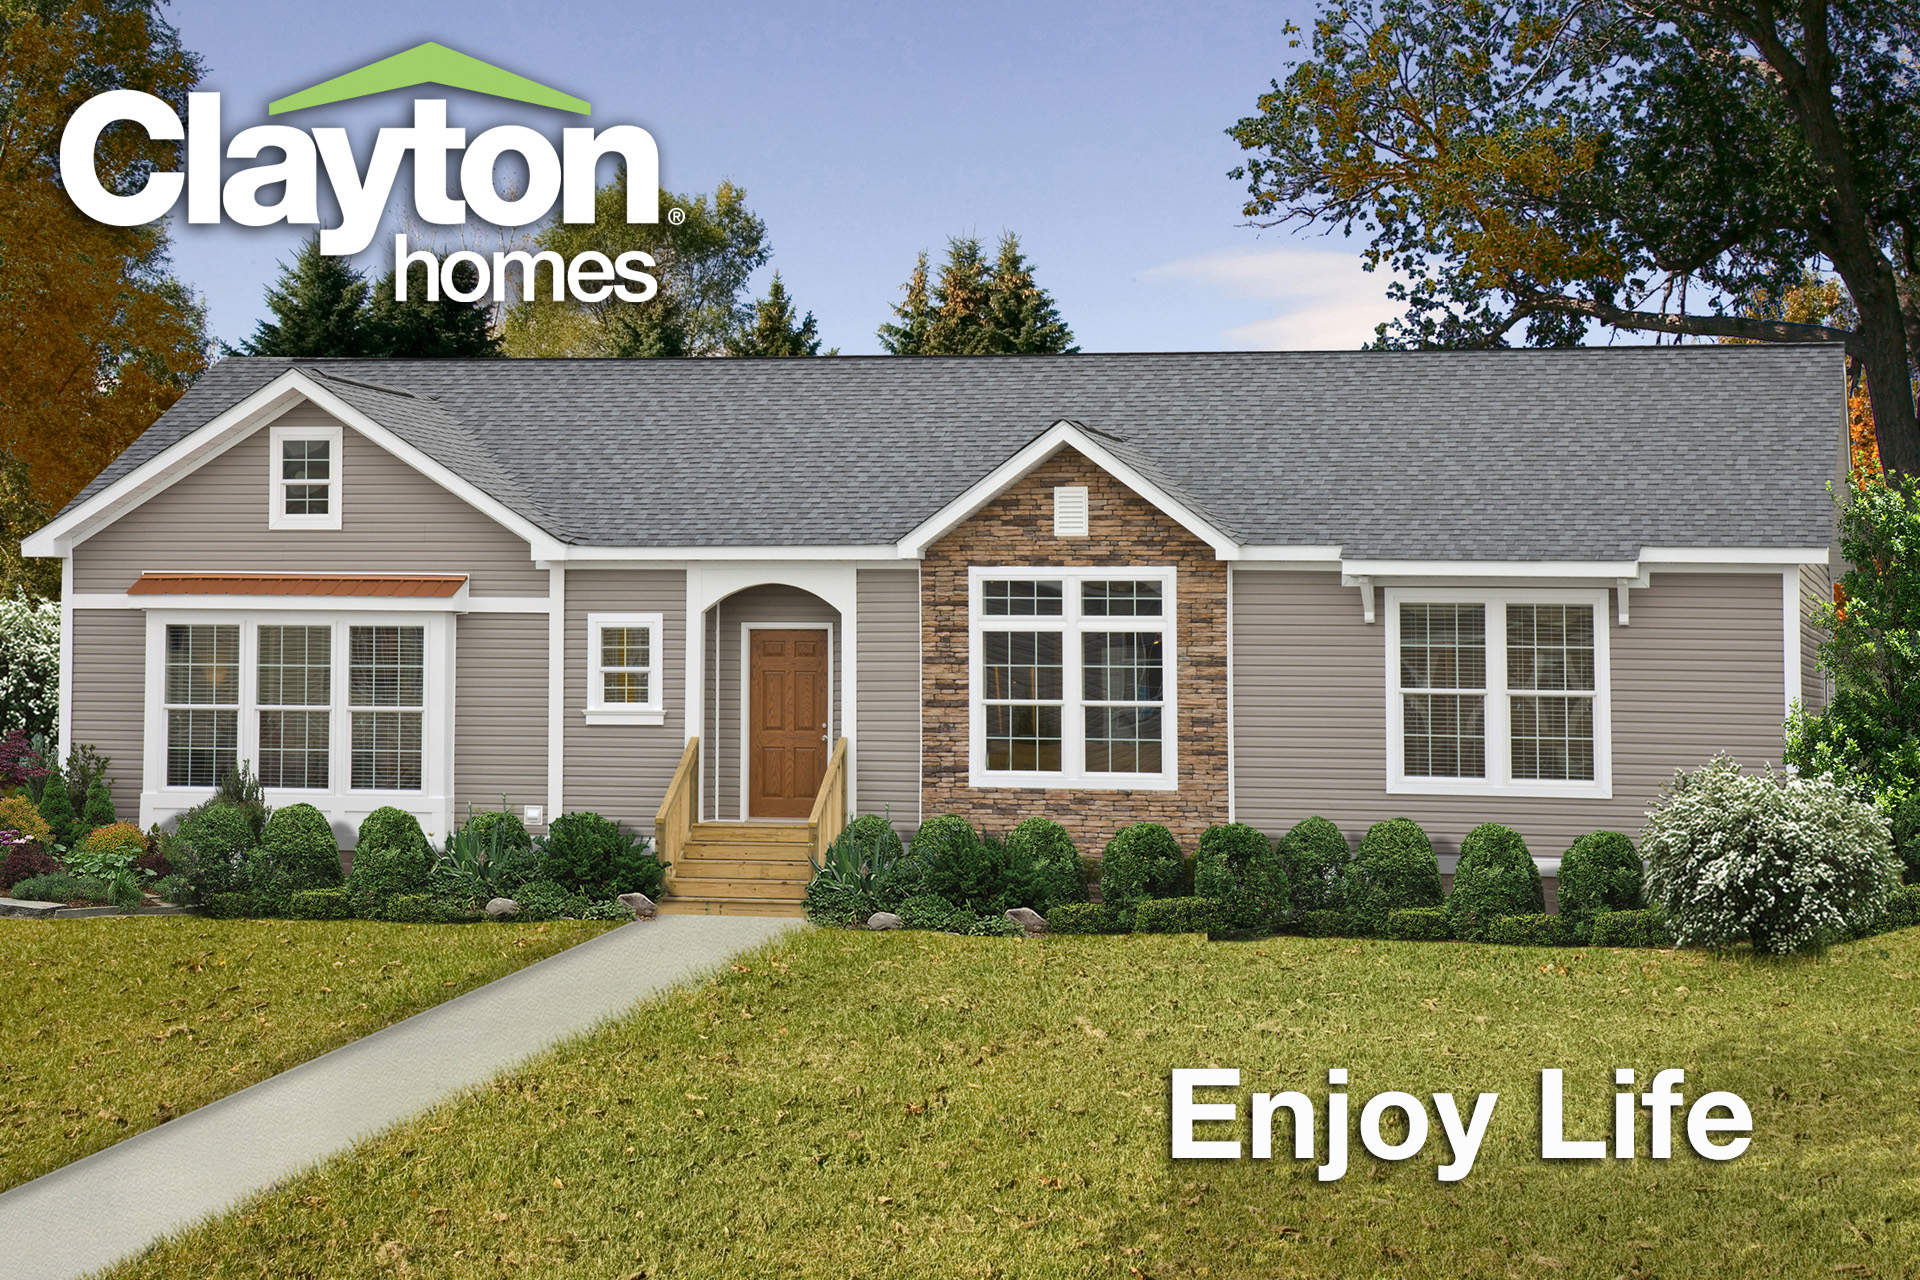 Clayton homes launches enjoy life sweepstakes for football for Lifestyle home builders